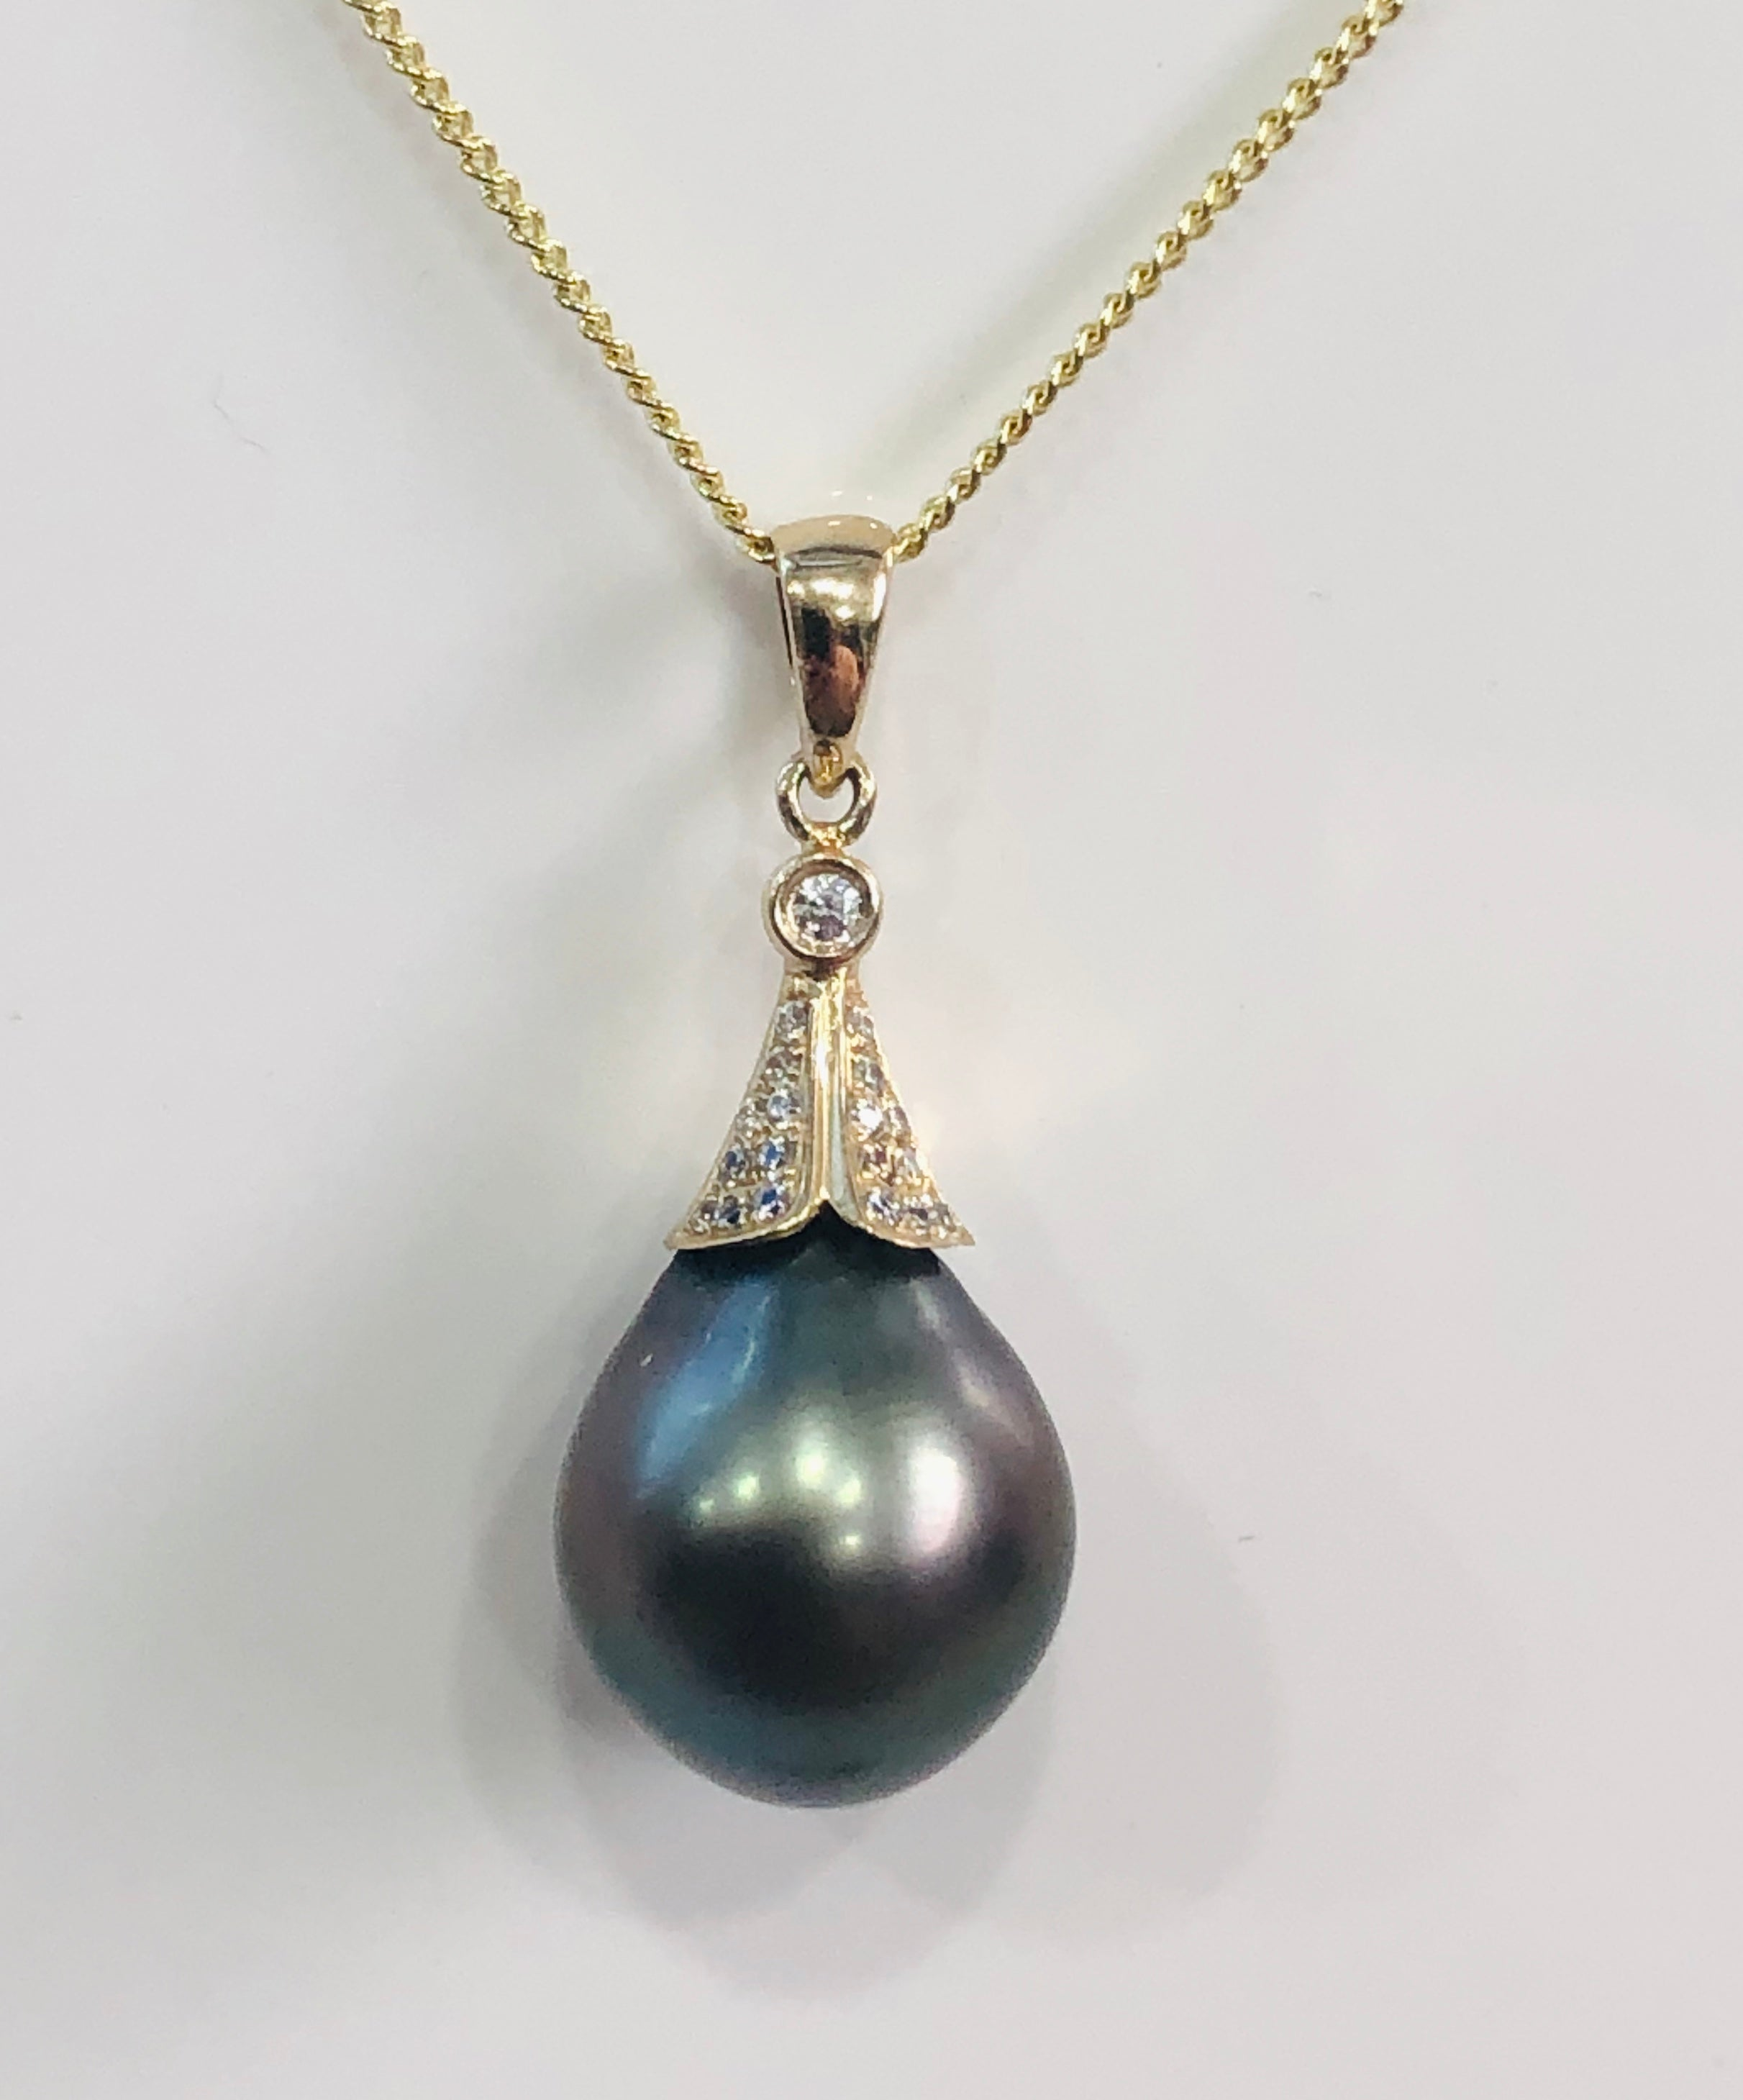 9ct Gold Pearl Pendant With A Teardrop Tahitian Black Pearl - 11